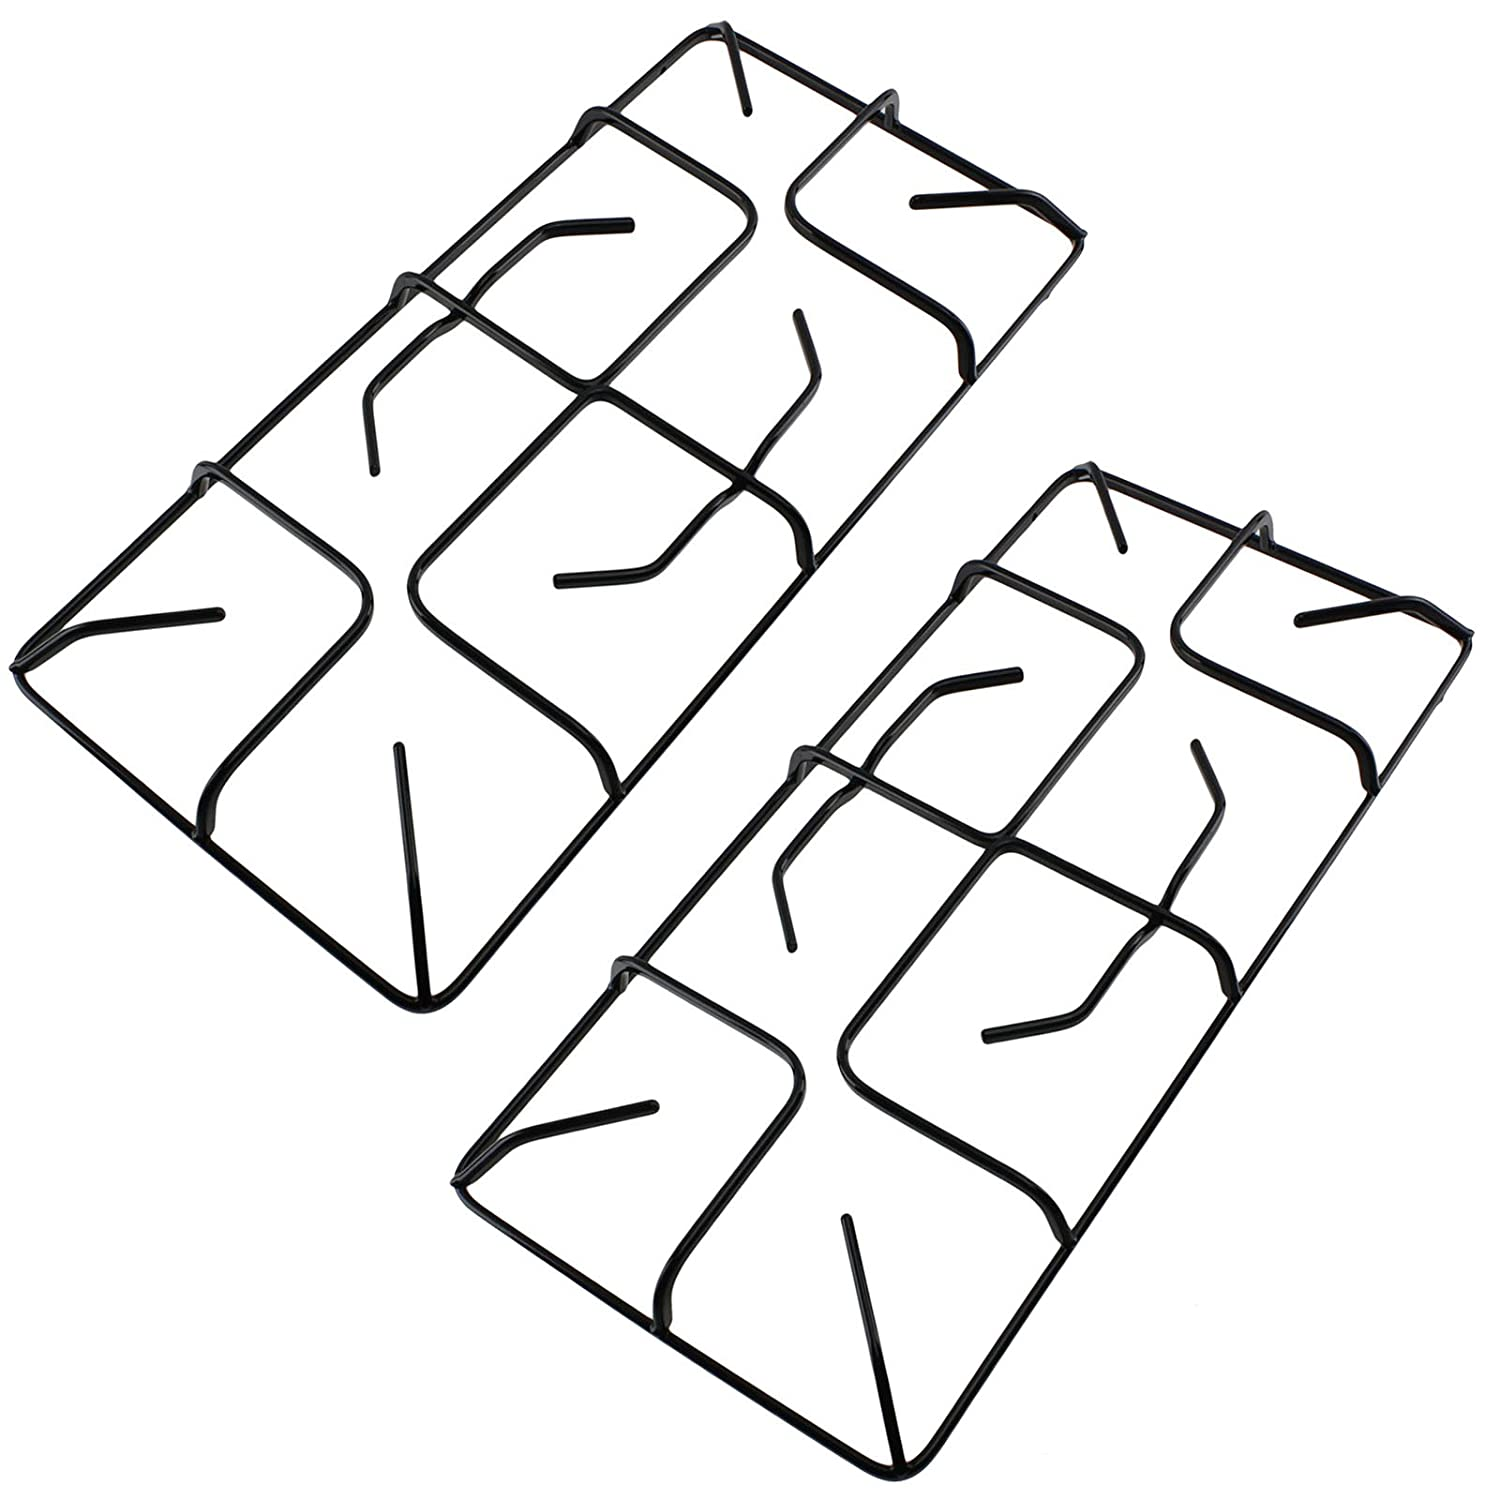 SPARES2GO Universal Gas Hob Pan Support Moka Trivet Stand Large, 257mm, Pack of 4